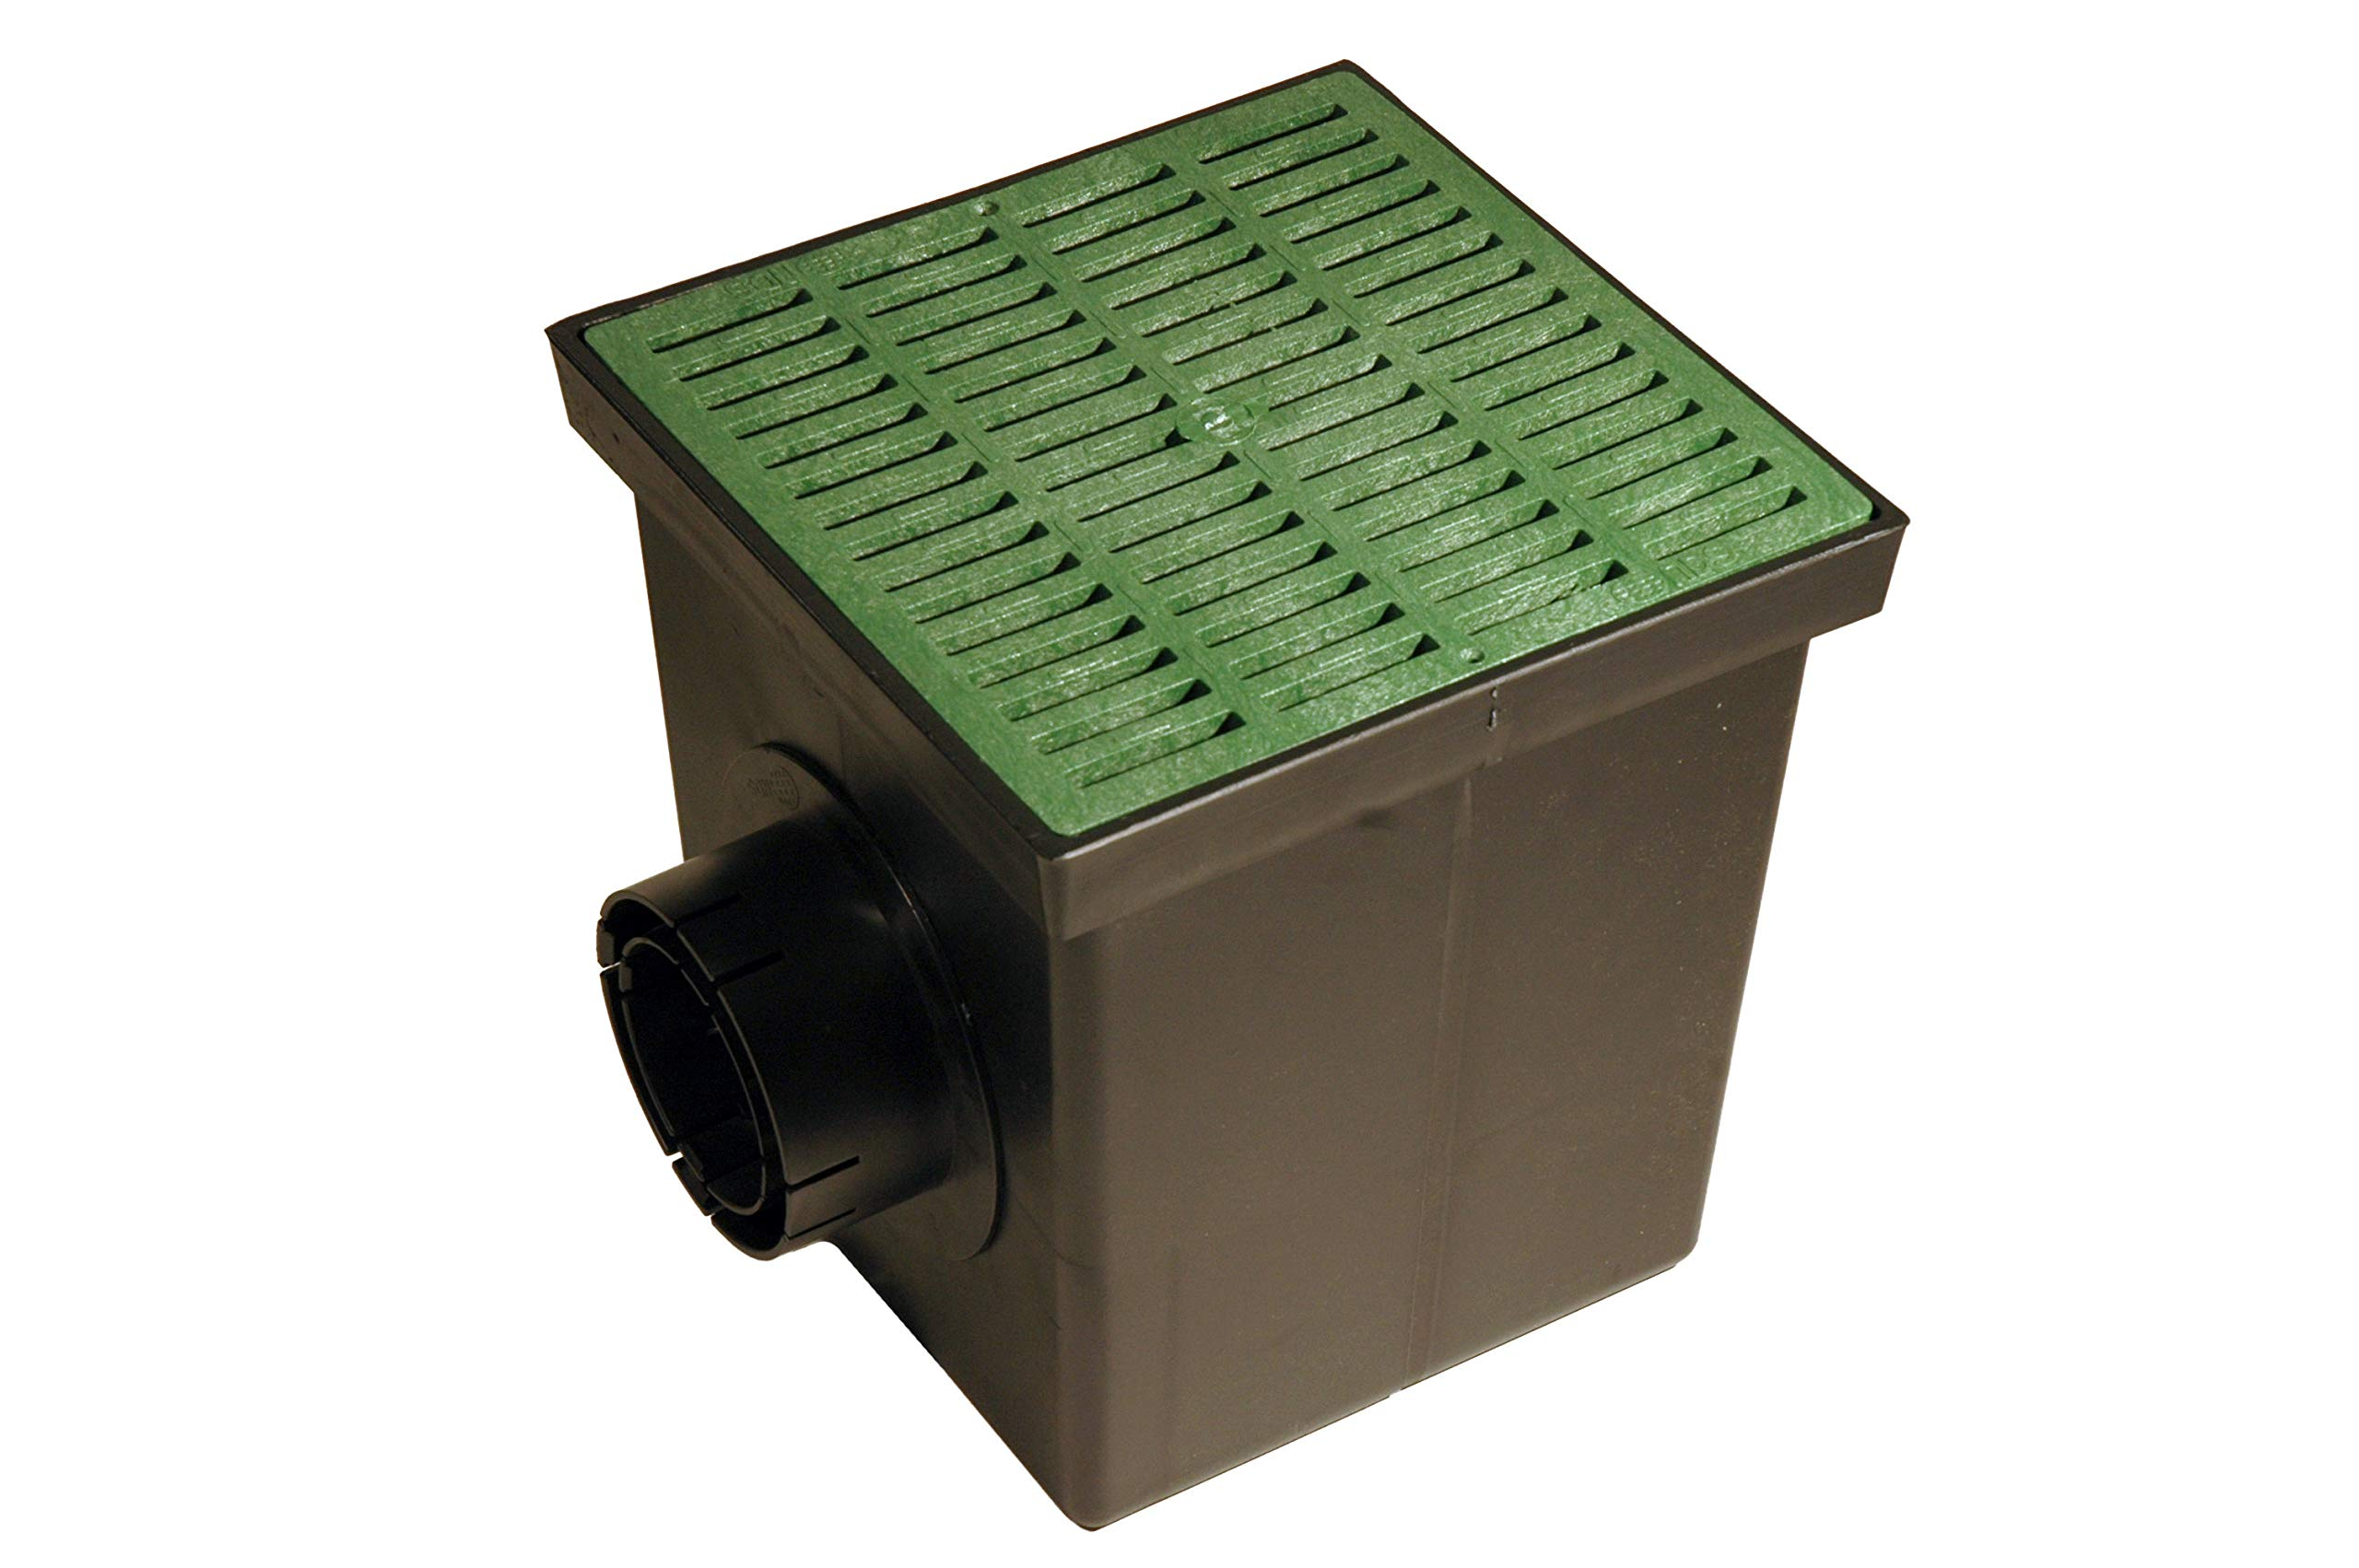 NDS Catch Basin Drainage Insert Grate Kit (12 x 12) by NDS